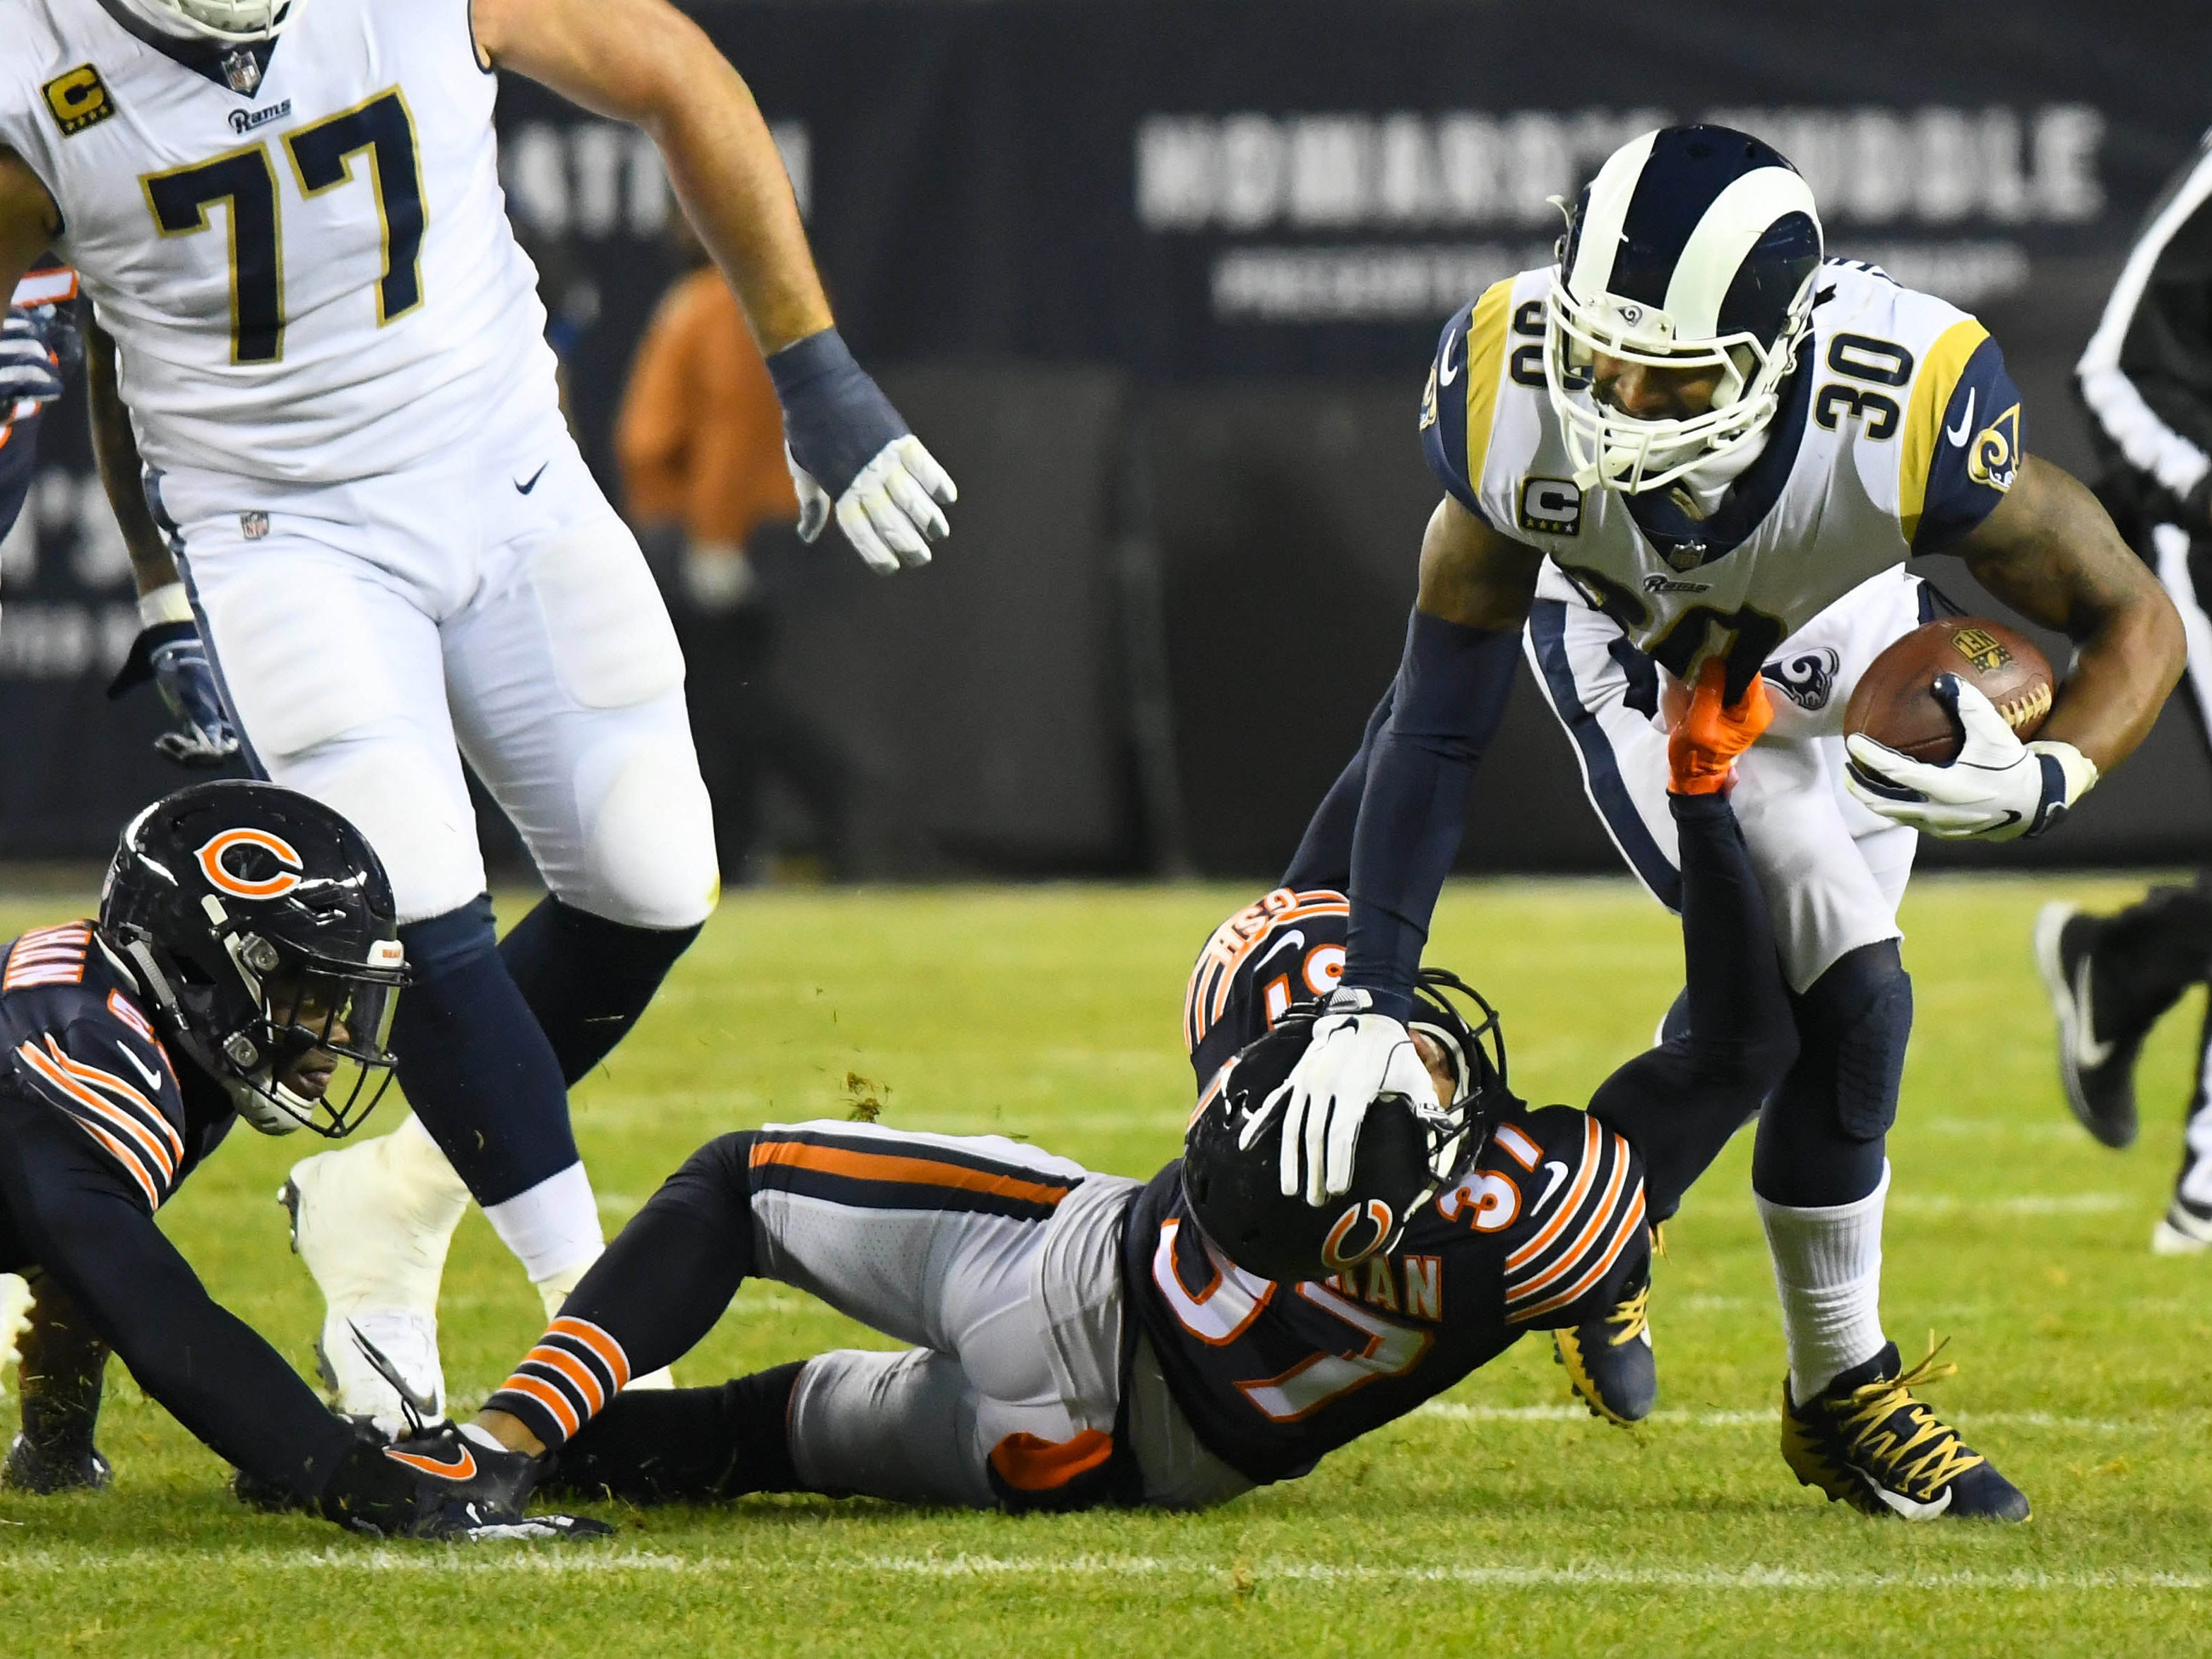 Los Angeles Rams running back Todd Gurleyrushes the ball against the Chicago Bears during the first quarter at Soldier Field.